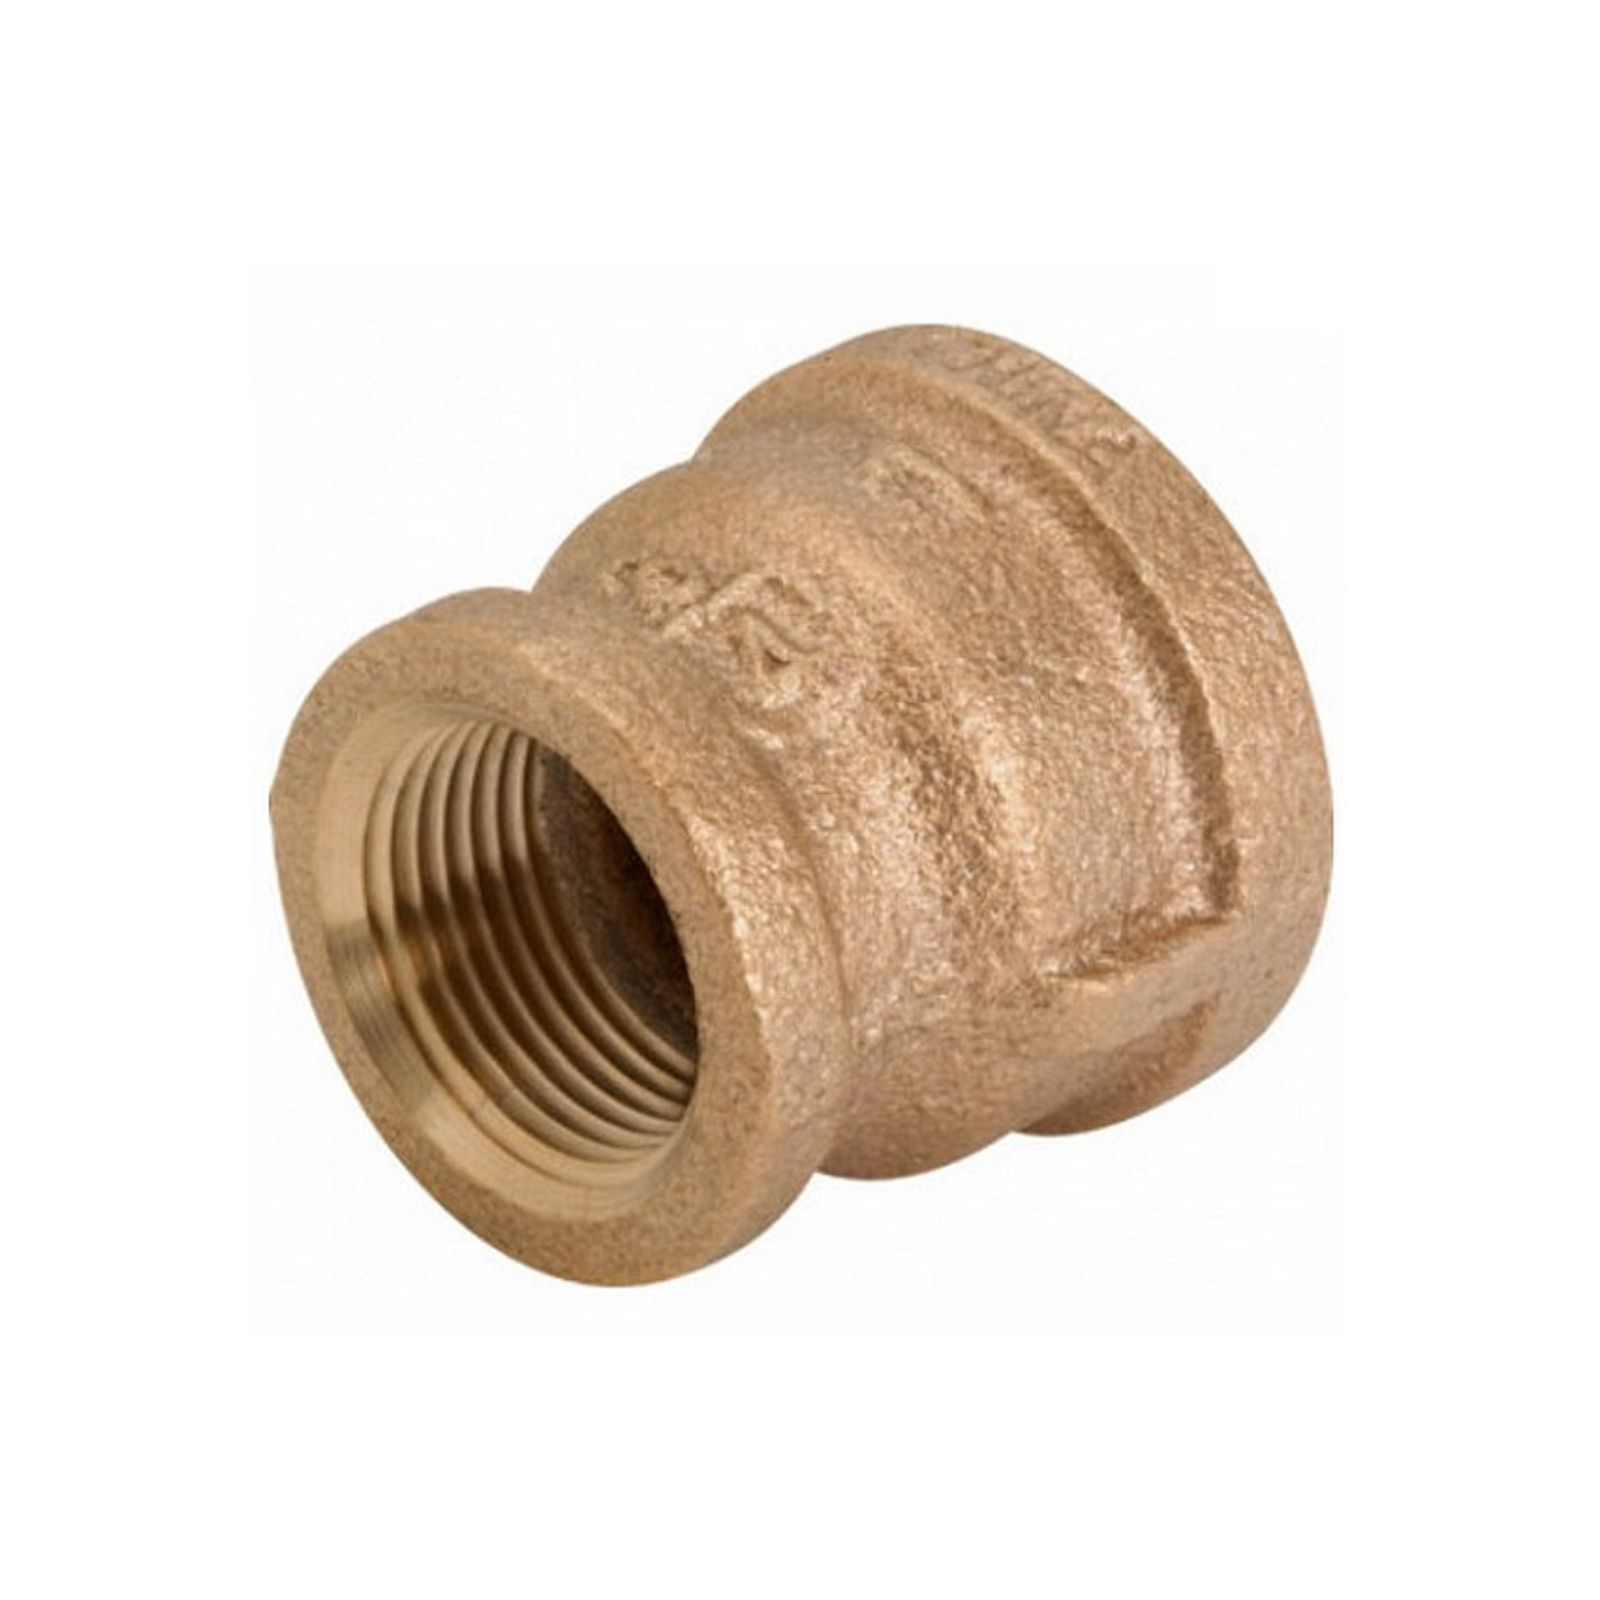 "Streamline 454-054 - Reducing Coupling, Red Brass, 1"" X 3/4"" I.D. I.D."